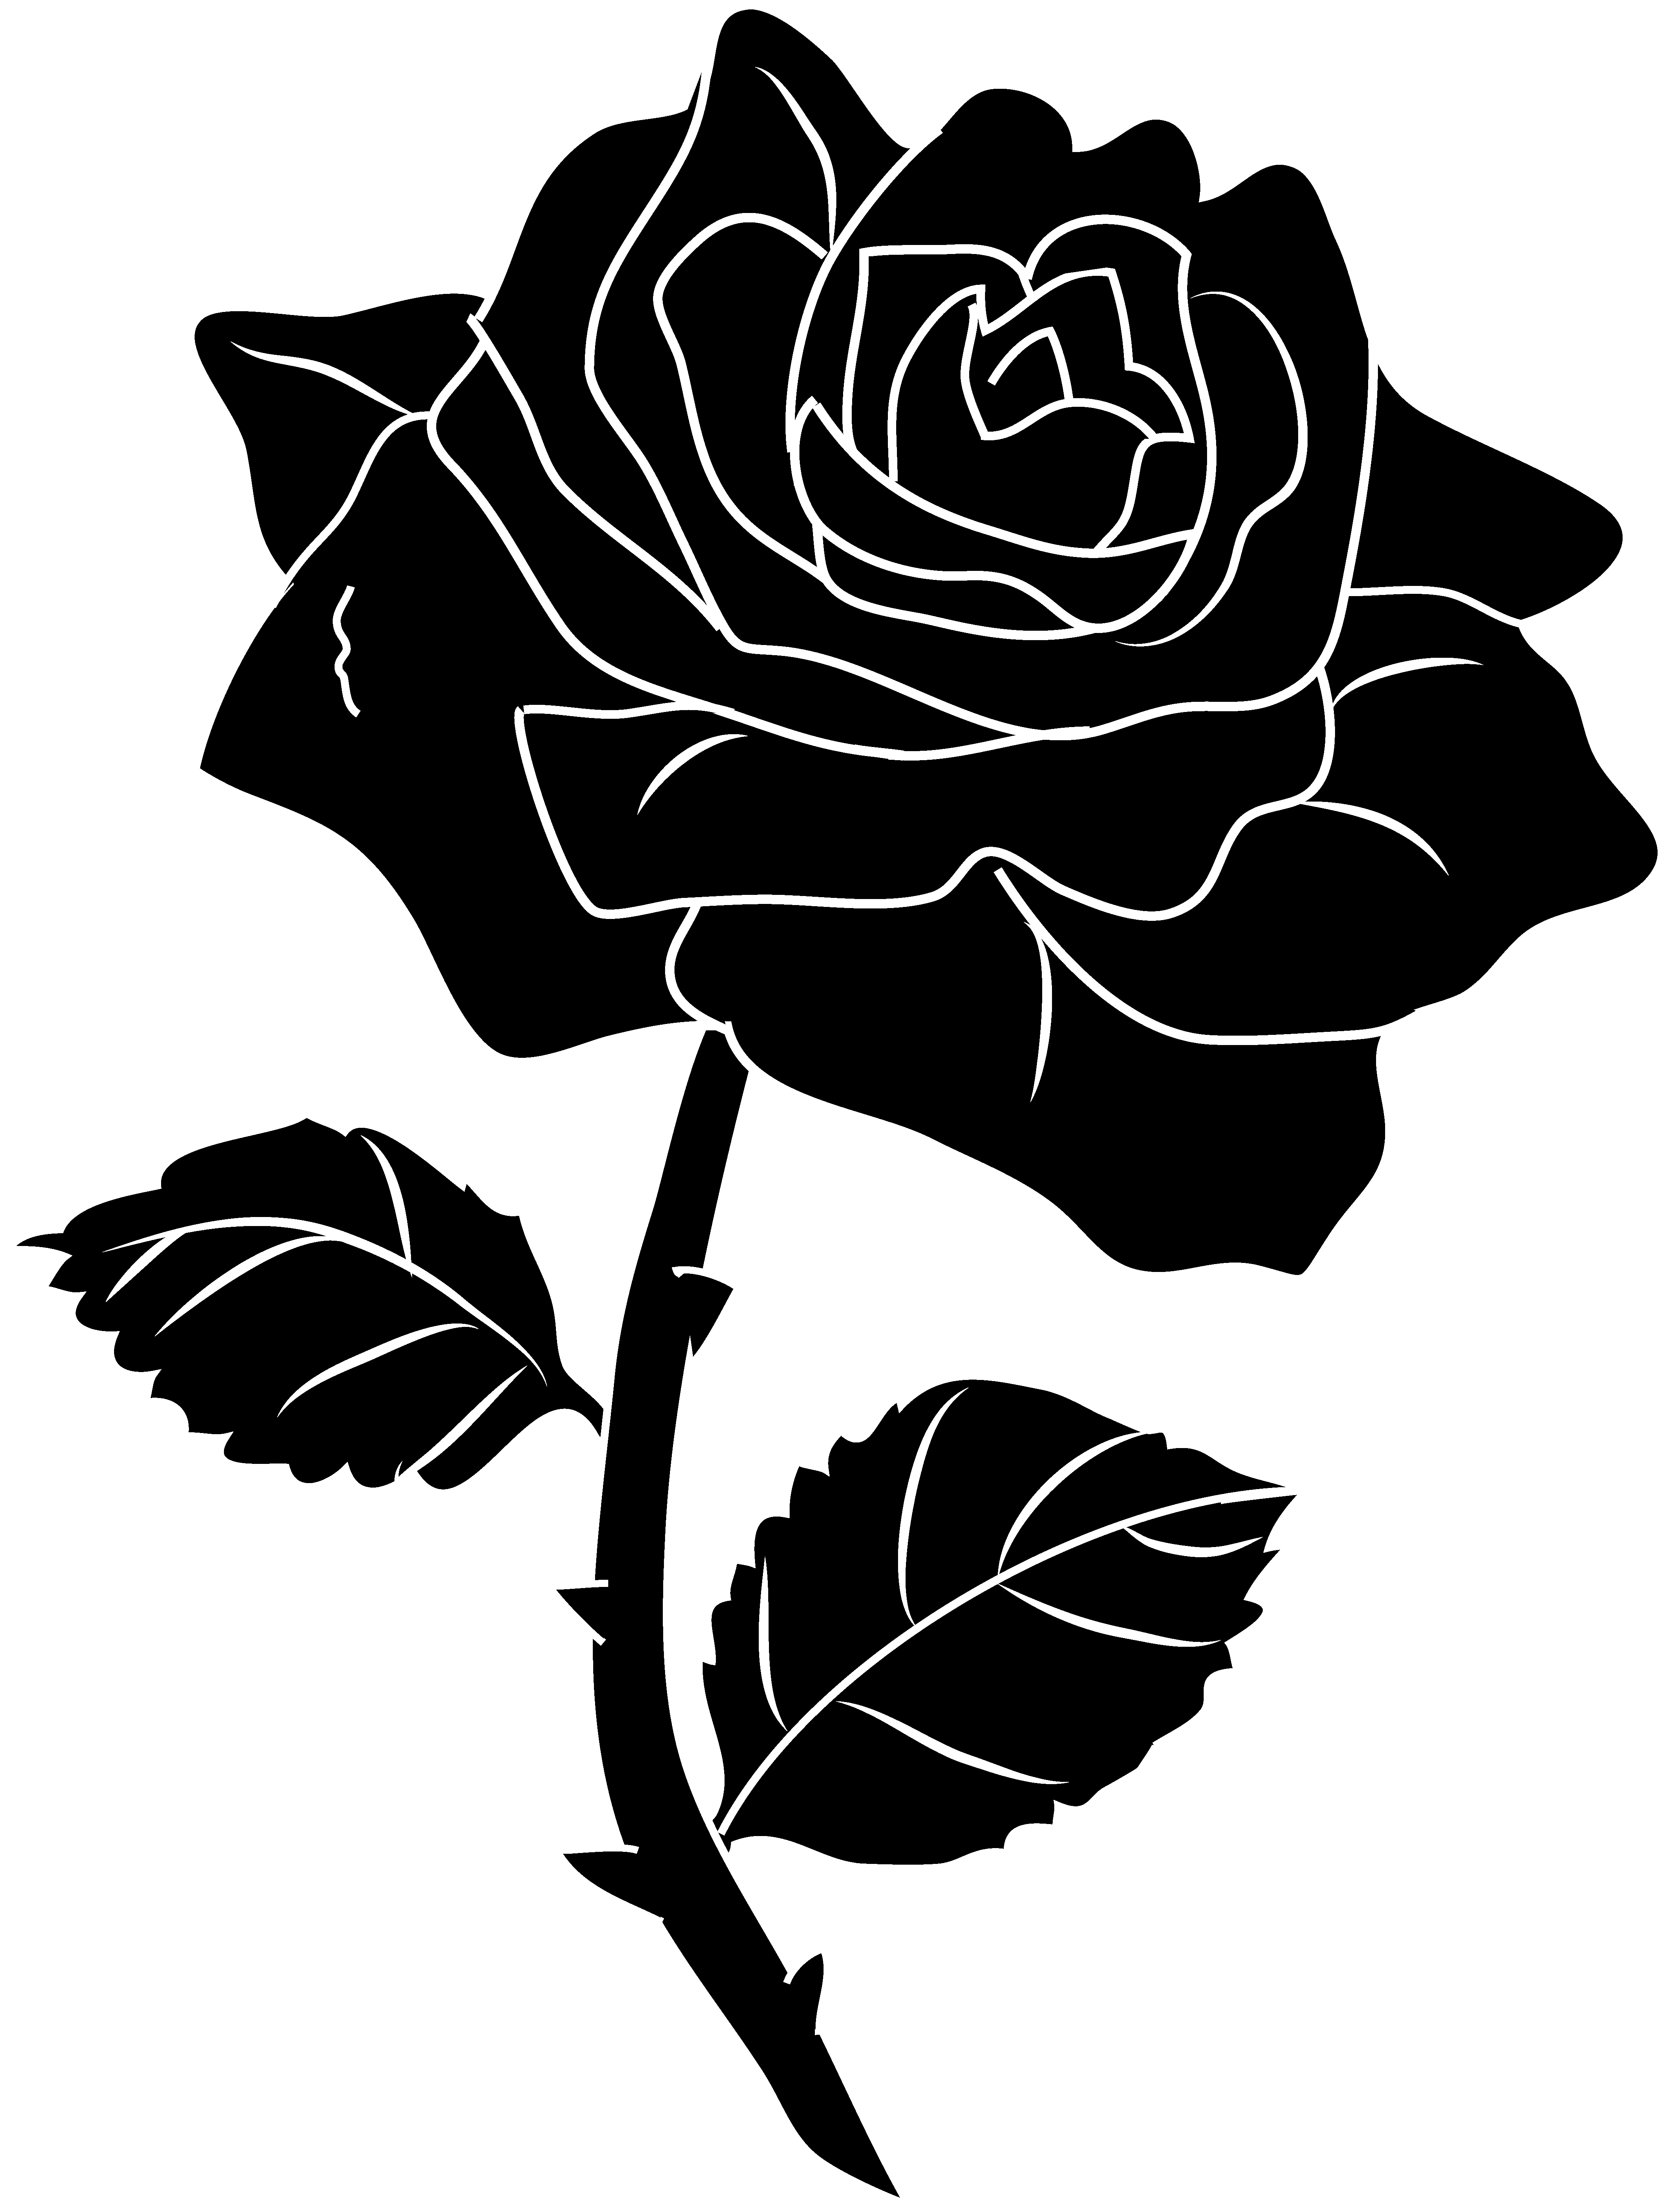 Rose Clipart Black And White & Rose Black And White Clip Art.